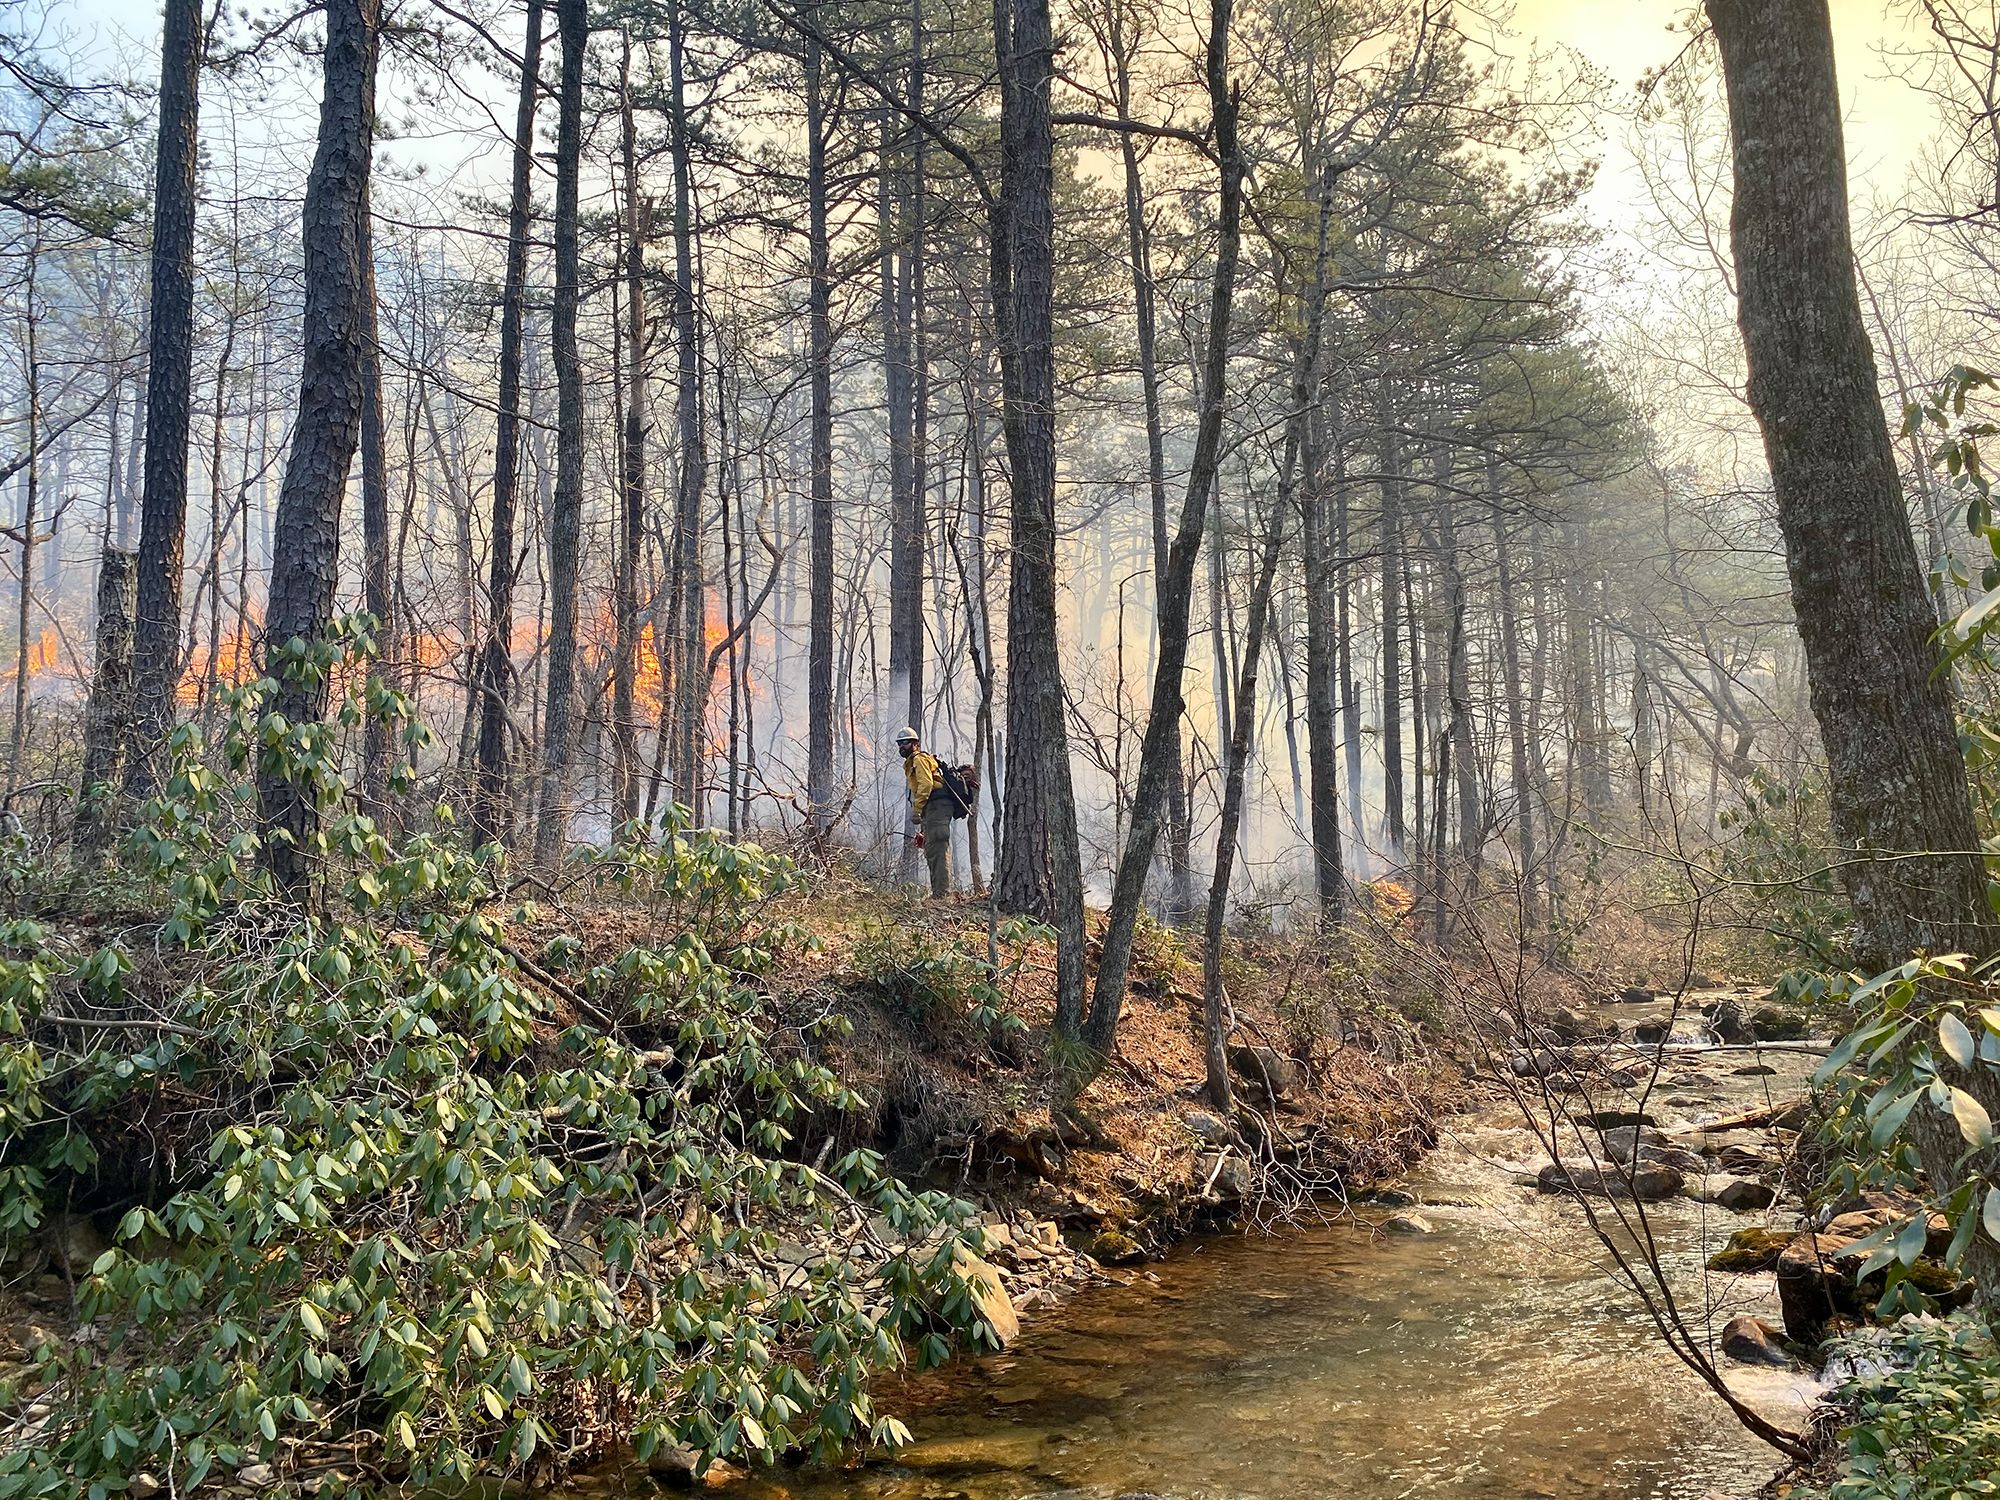 A man wearing yellow fire gear stands in a forest. Fire and smoke rise in front of him from a controlled burn. A wide creek flows behind him at the bottom of a steep bank.